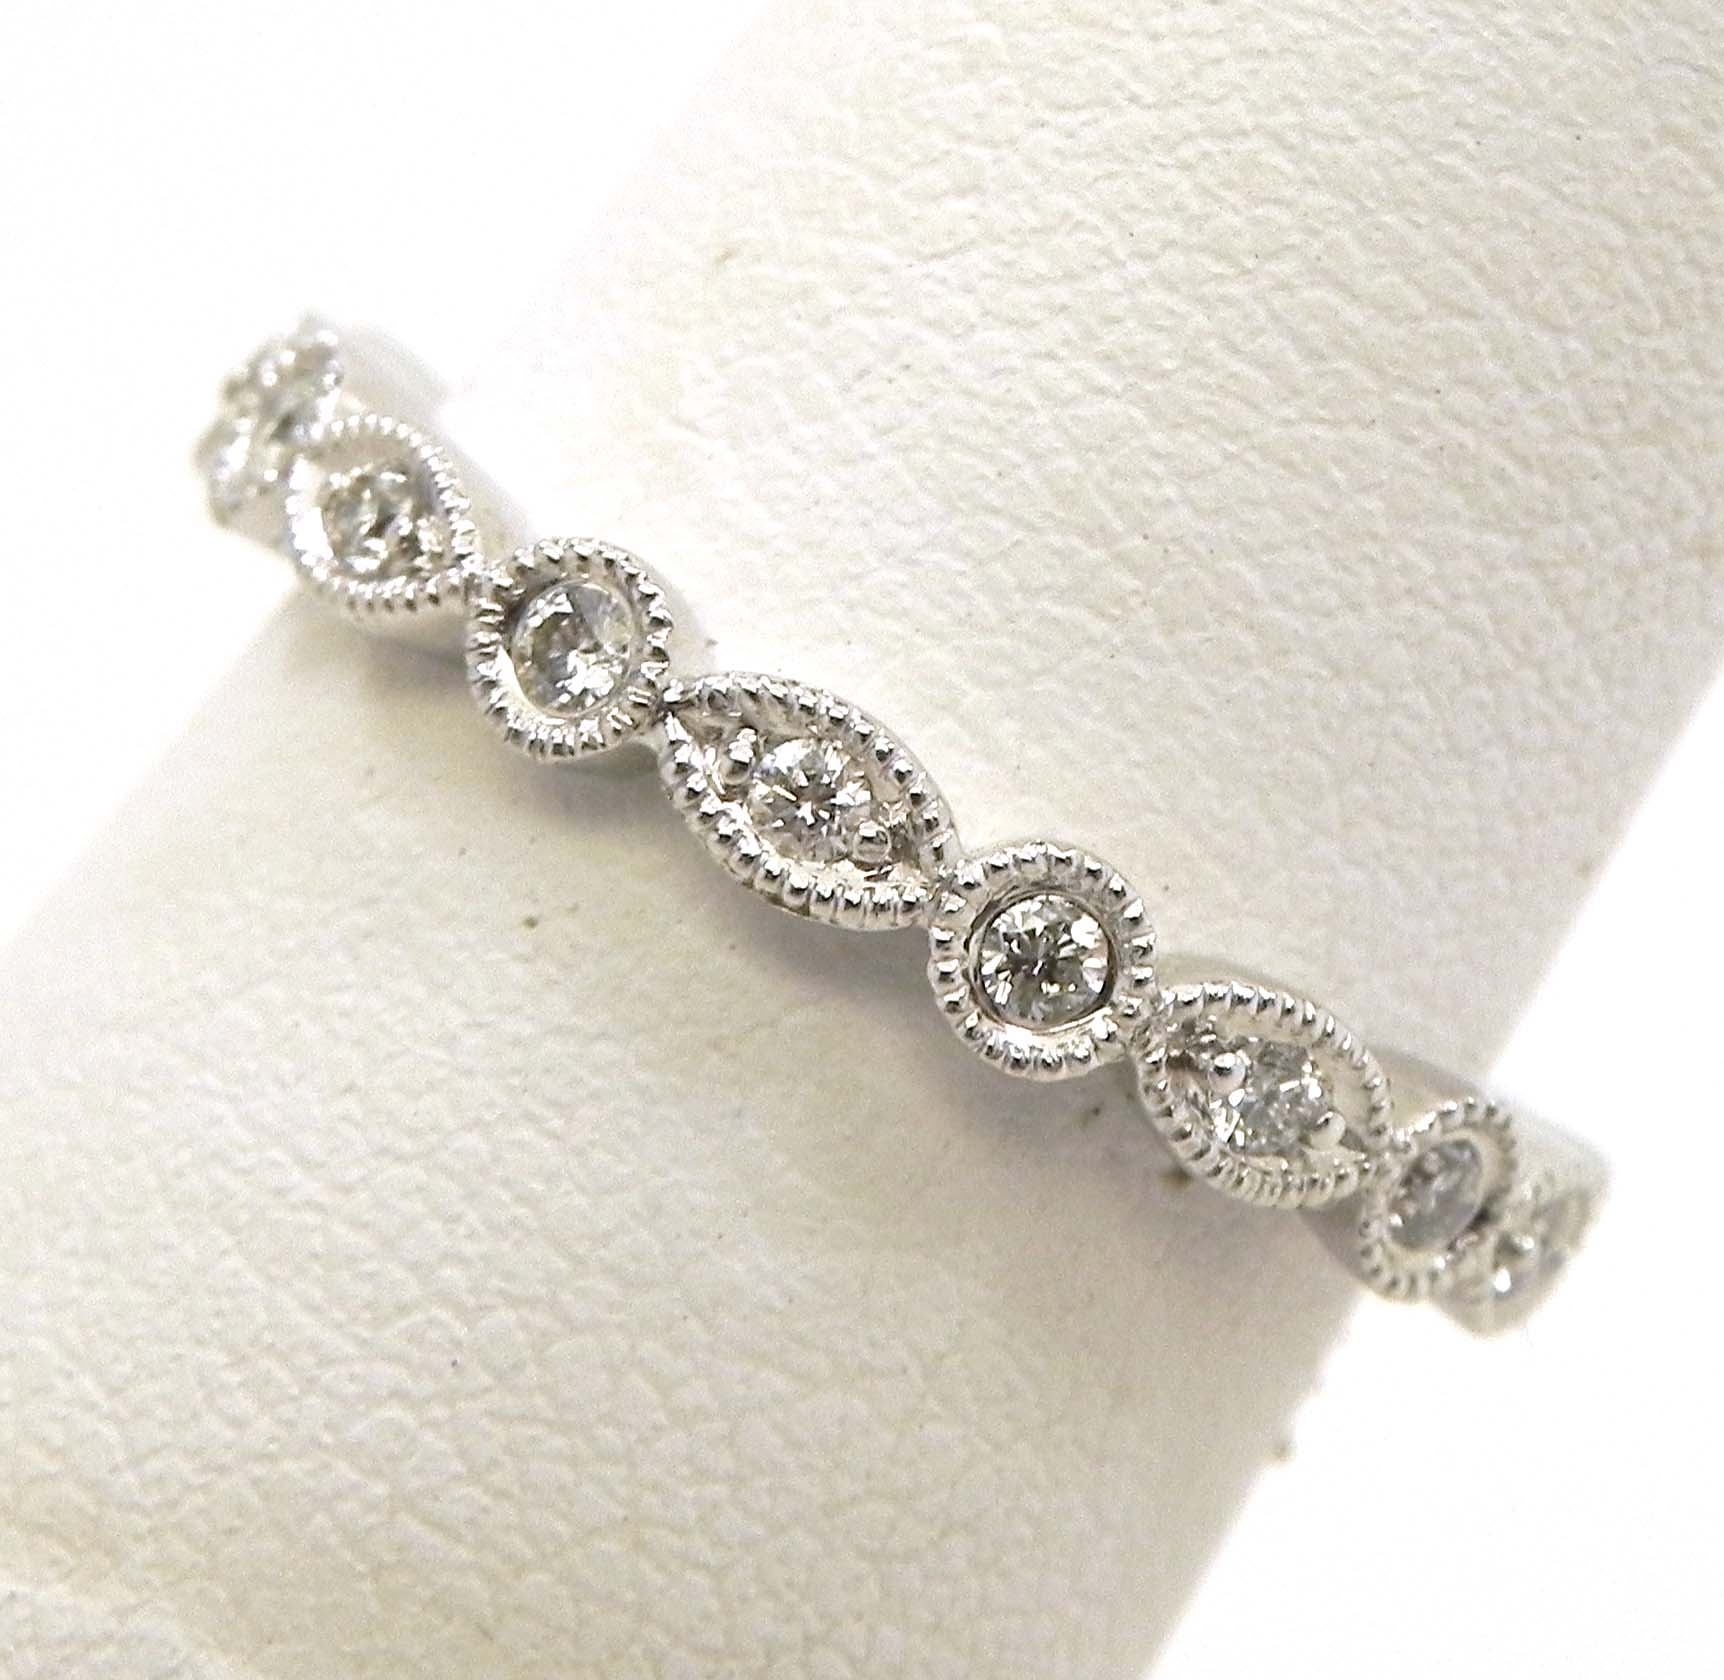 La s 18k White Gold Diamonds Round & Oval Eternity Wedding Band